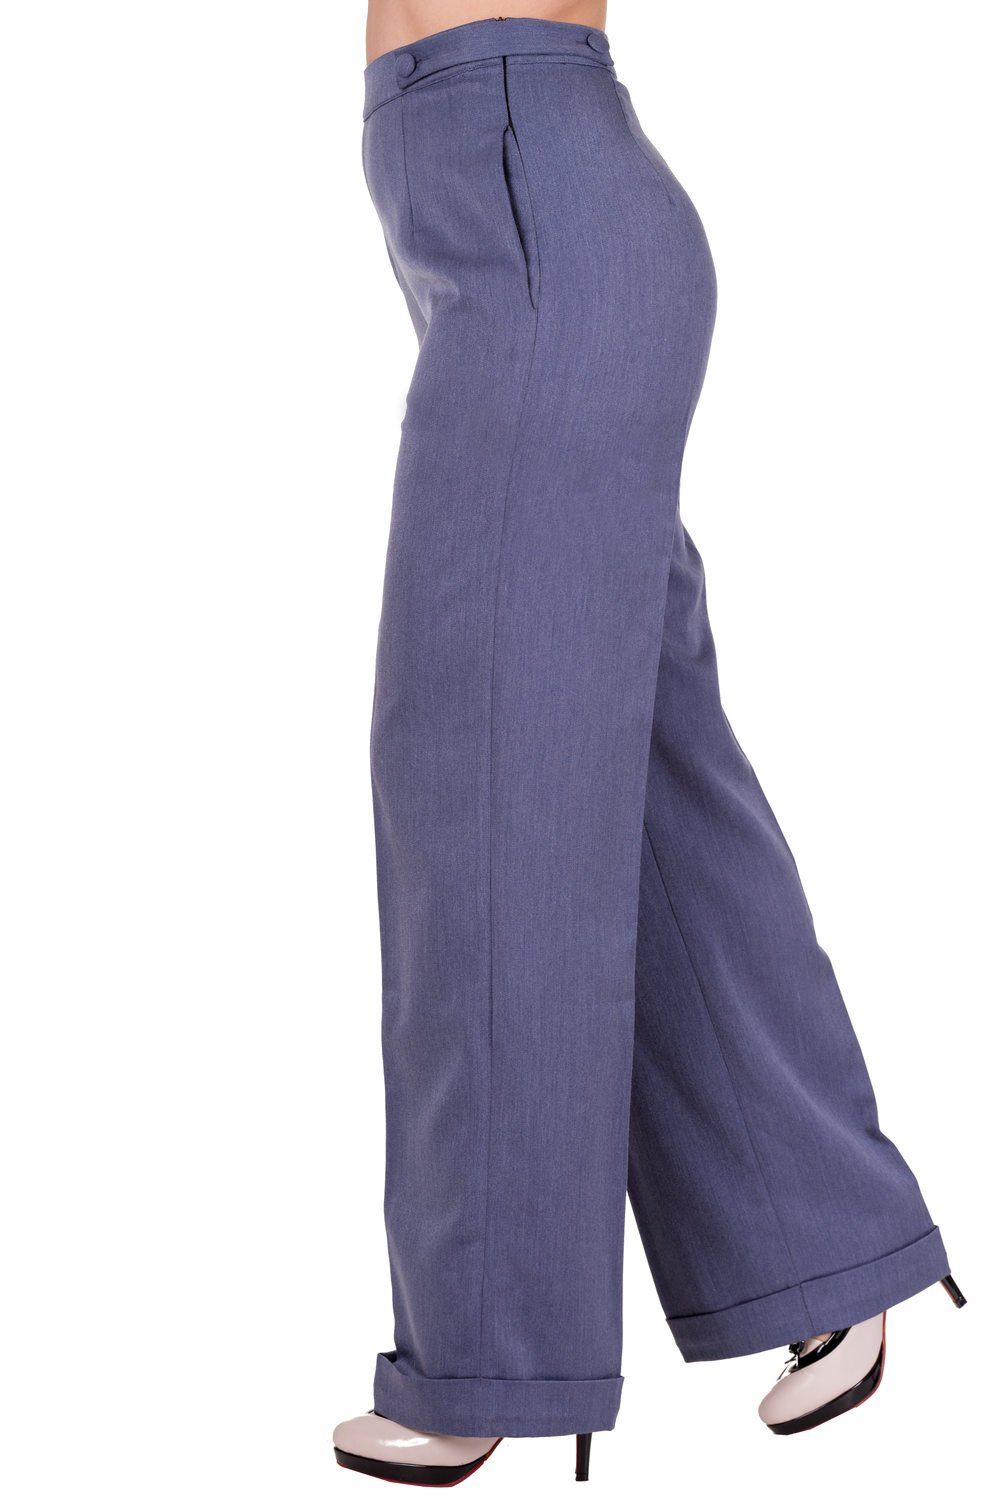 Hippie Costumes, Hippie Outfits Denim Banned Party On Trousers - 26 to 34 Inch Waist $33.82 AT vintagedancer.com